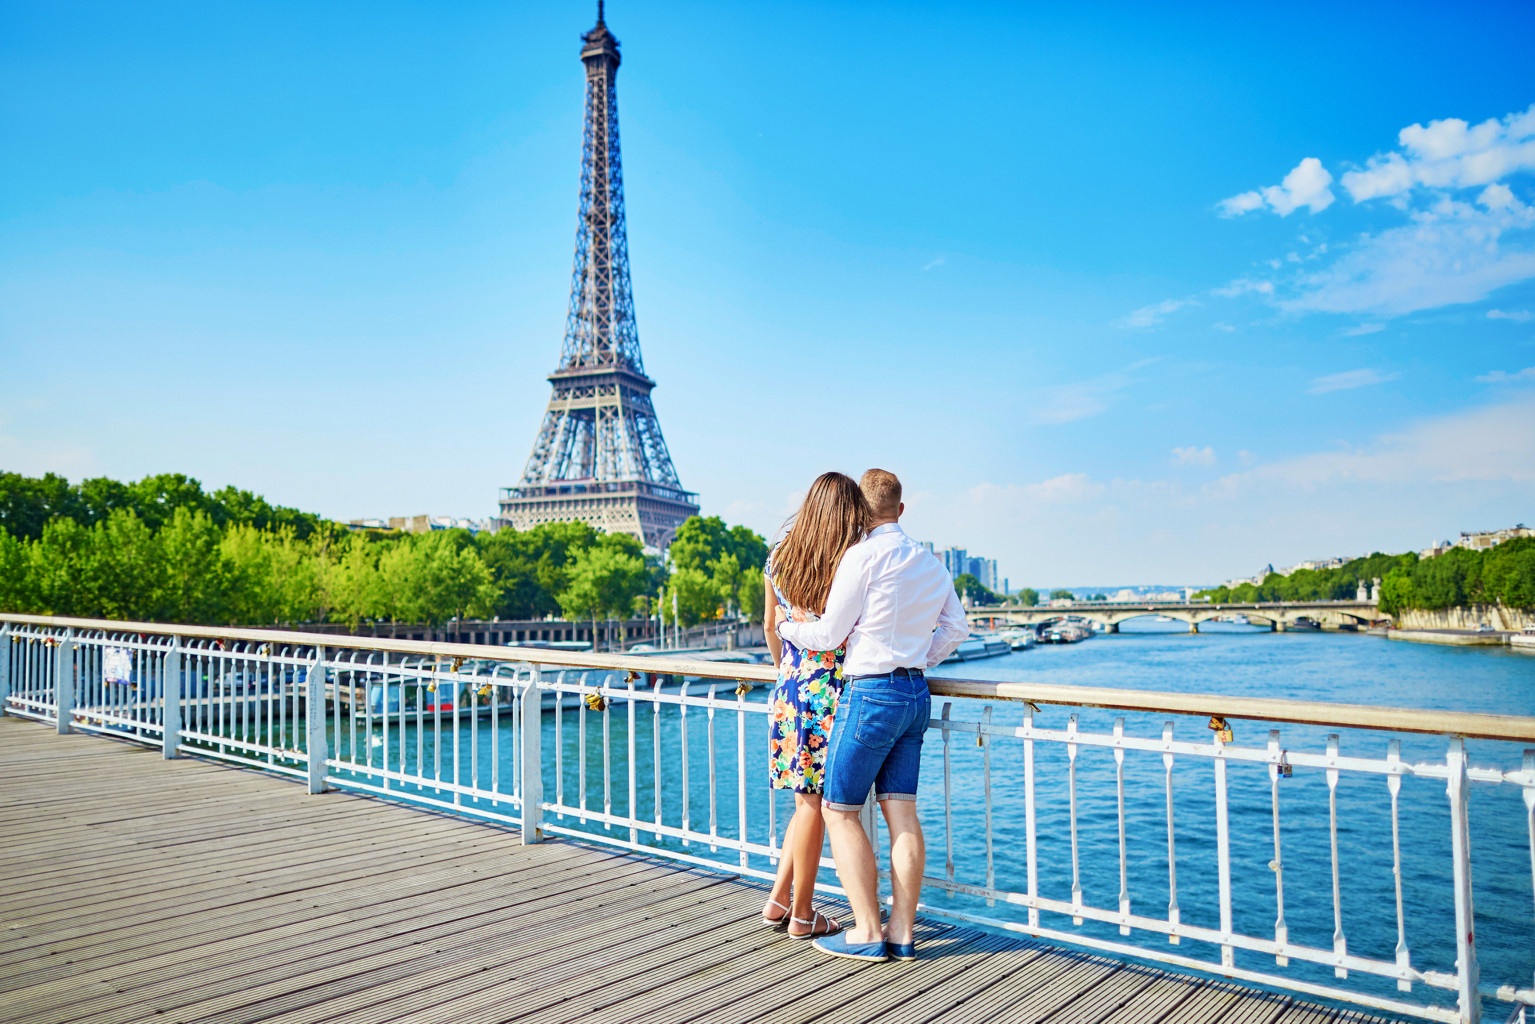 Sugar Dating – What The French Can Teach You About Sugar